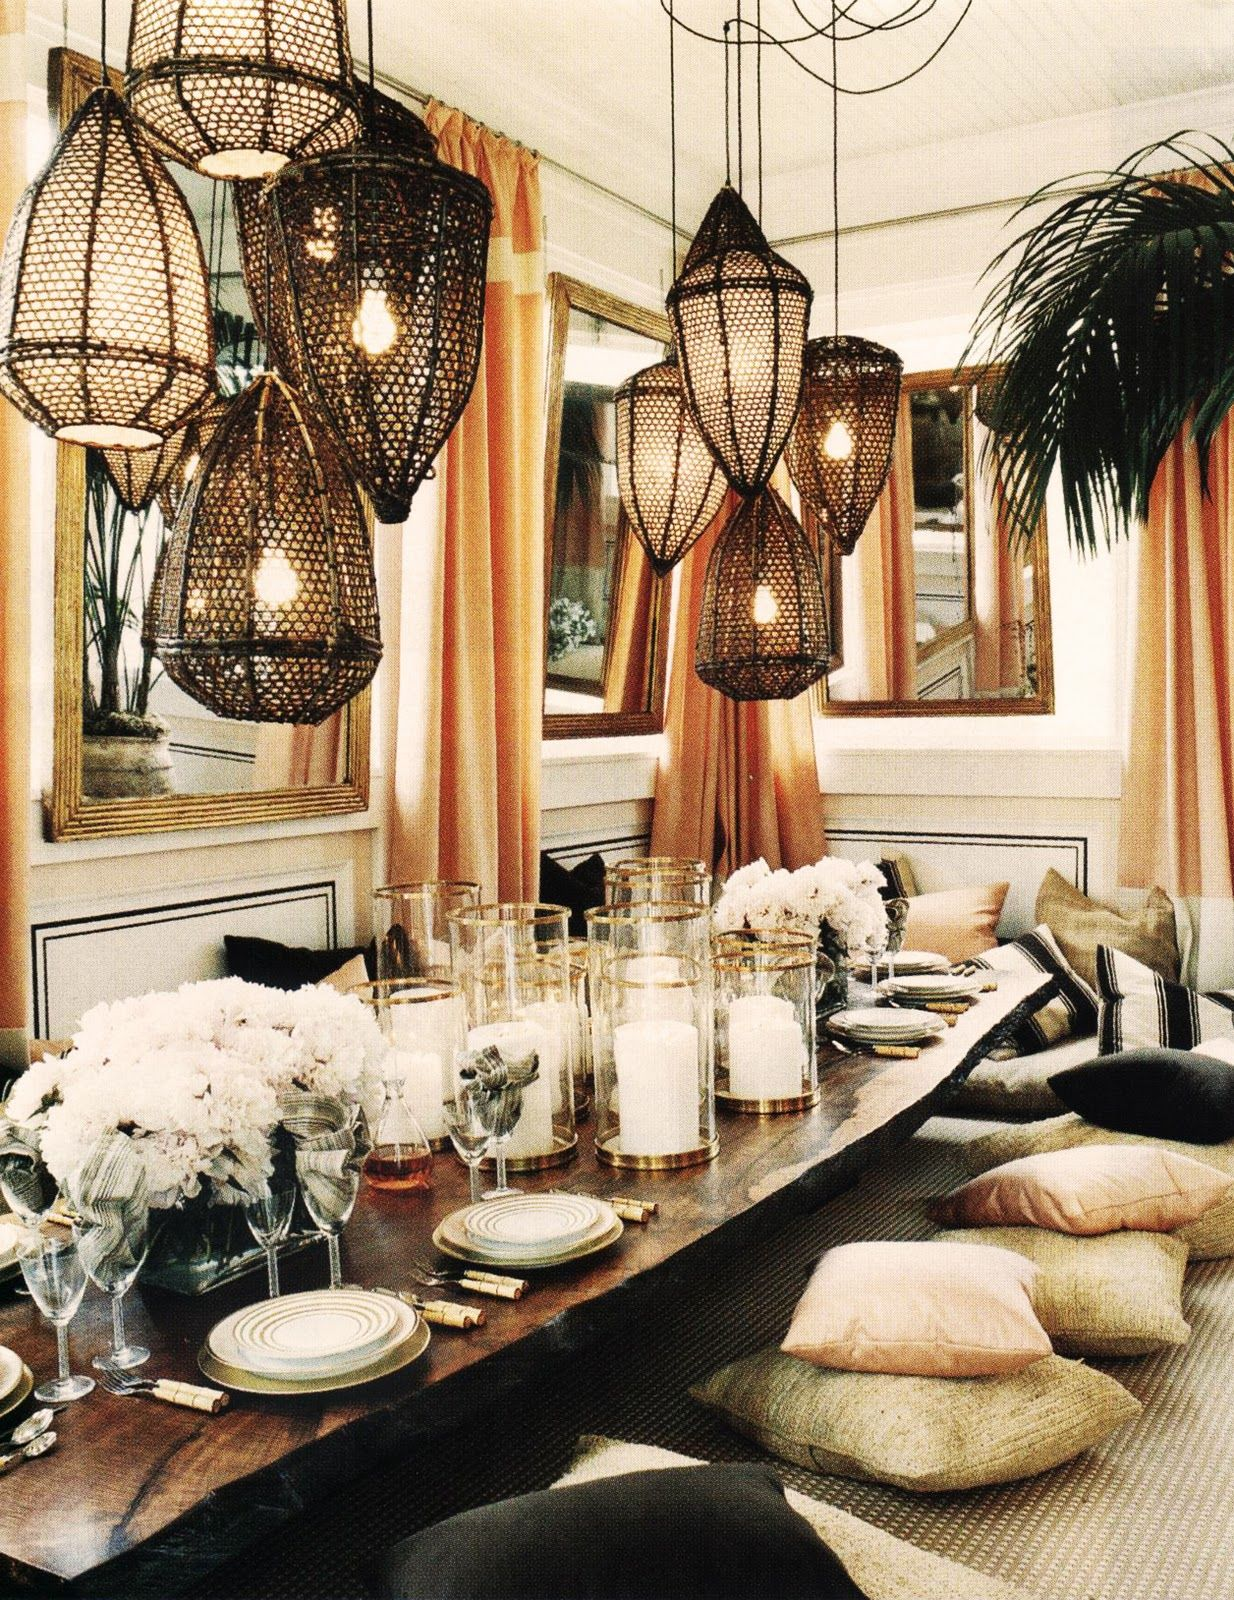 Haute Khuuture Interior Design Decoration Home Decor Fashion Forward Glam Luxe Chic Sophisticated Modern Global